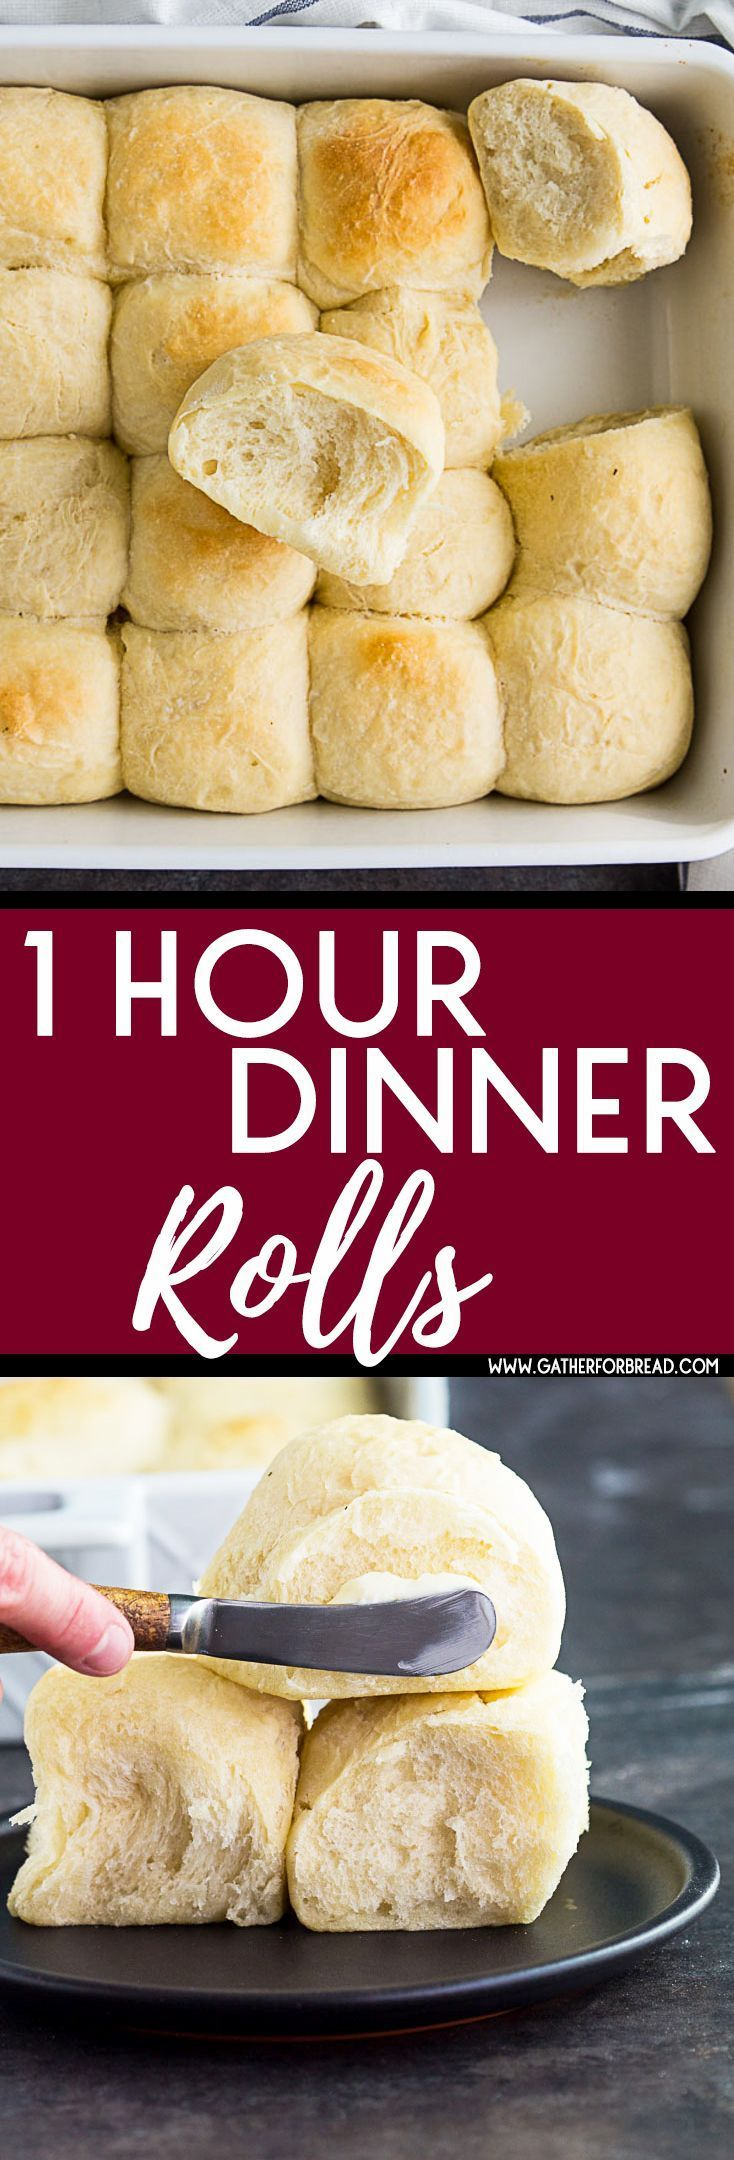 1 Hour Dinner Rolls - Easy homemade soft dinner rolls made in 1 hour. Made from scratch and perfect for the holidays.